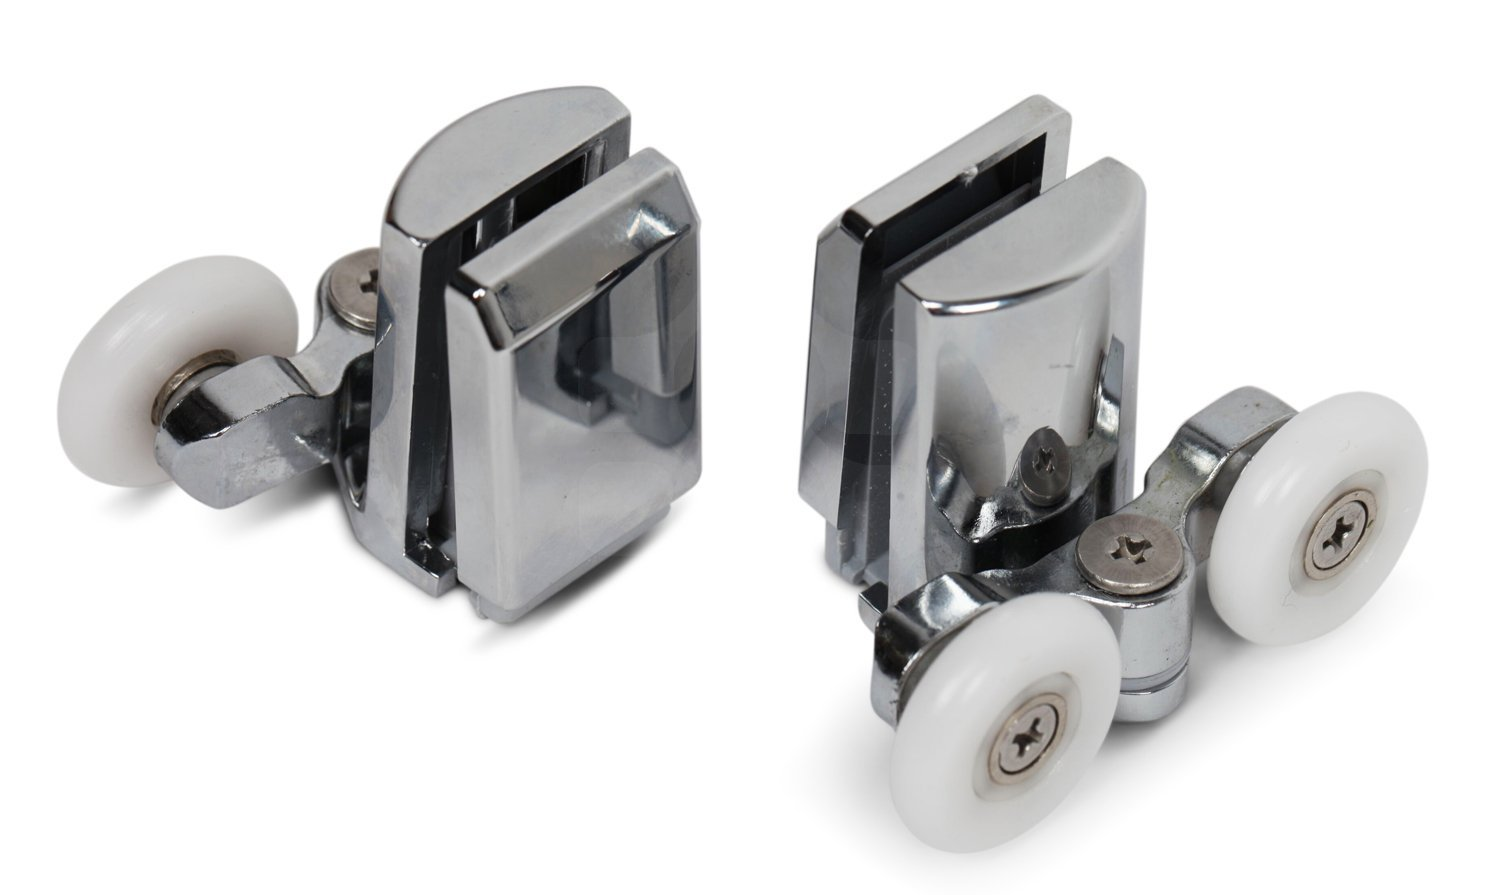 Kenley Stainless Steel Shower Door Twin Rollers Runners Set of 4 Top \u0026 Bottom-in Door Rollers from Home Improvement on Aliexpress.com | Alibaba Group  sc 1 st  AliExpress.com & Kenley Stainless Steel Shower Door Twin Rollers Runners Set of 4 ...